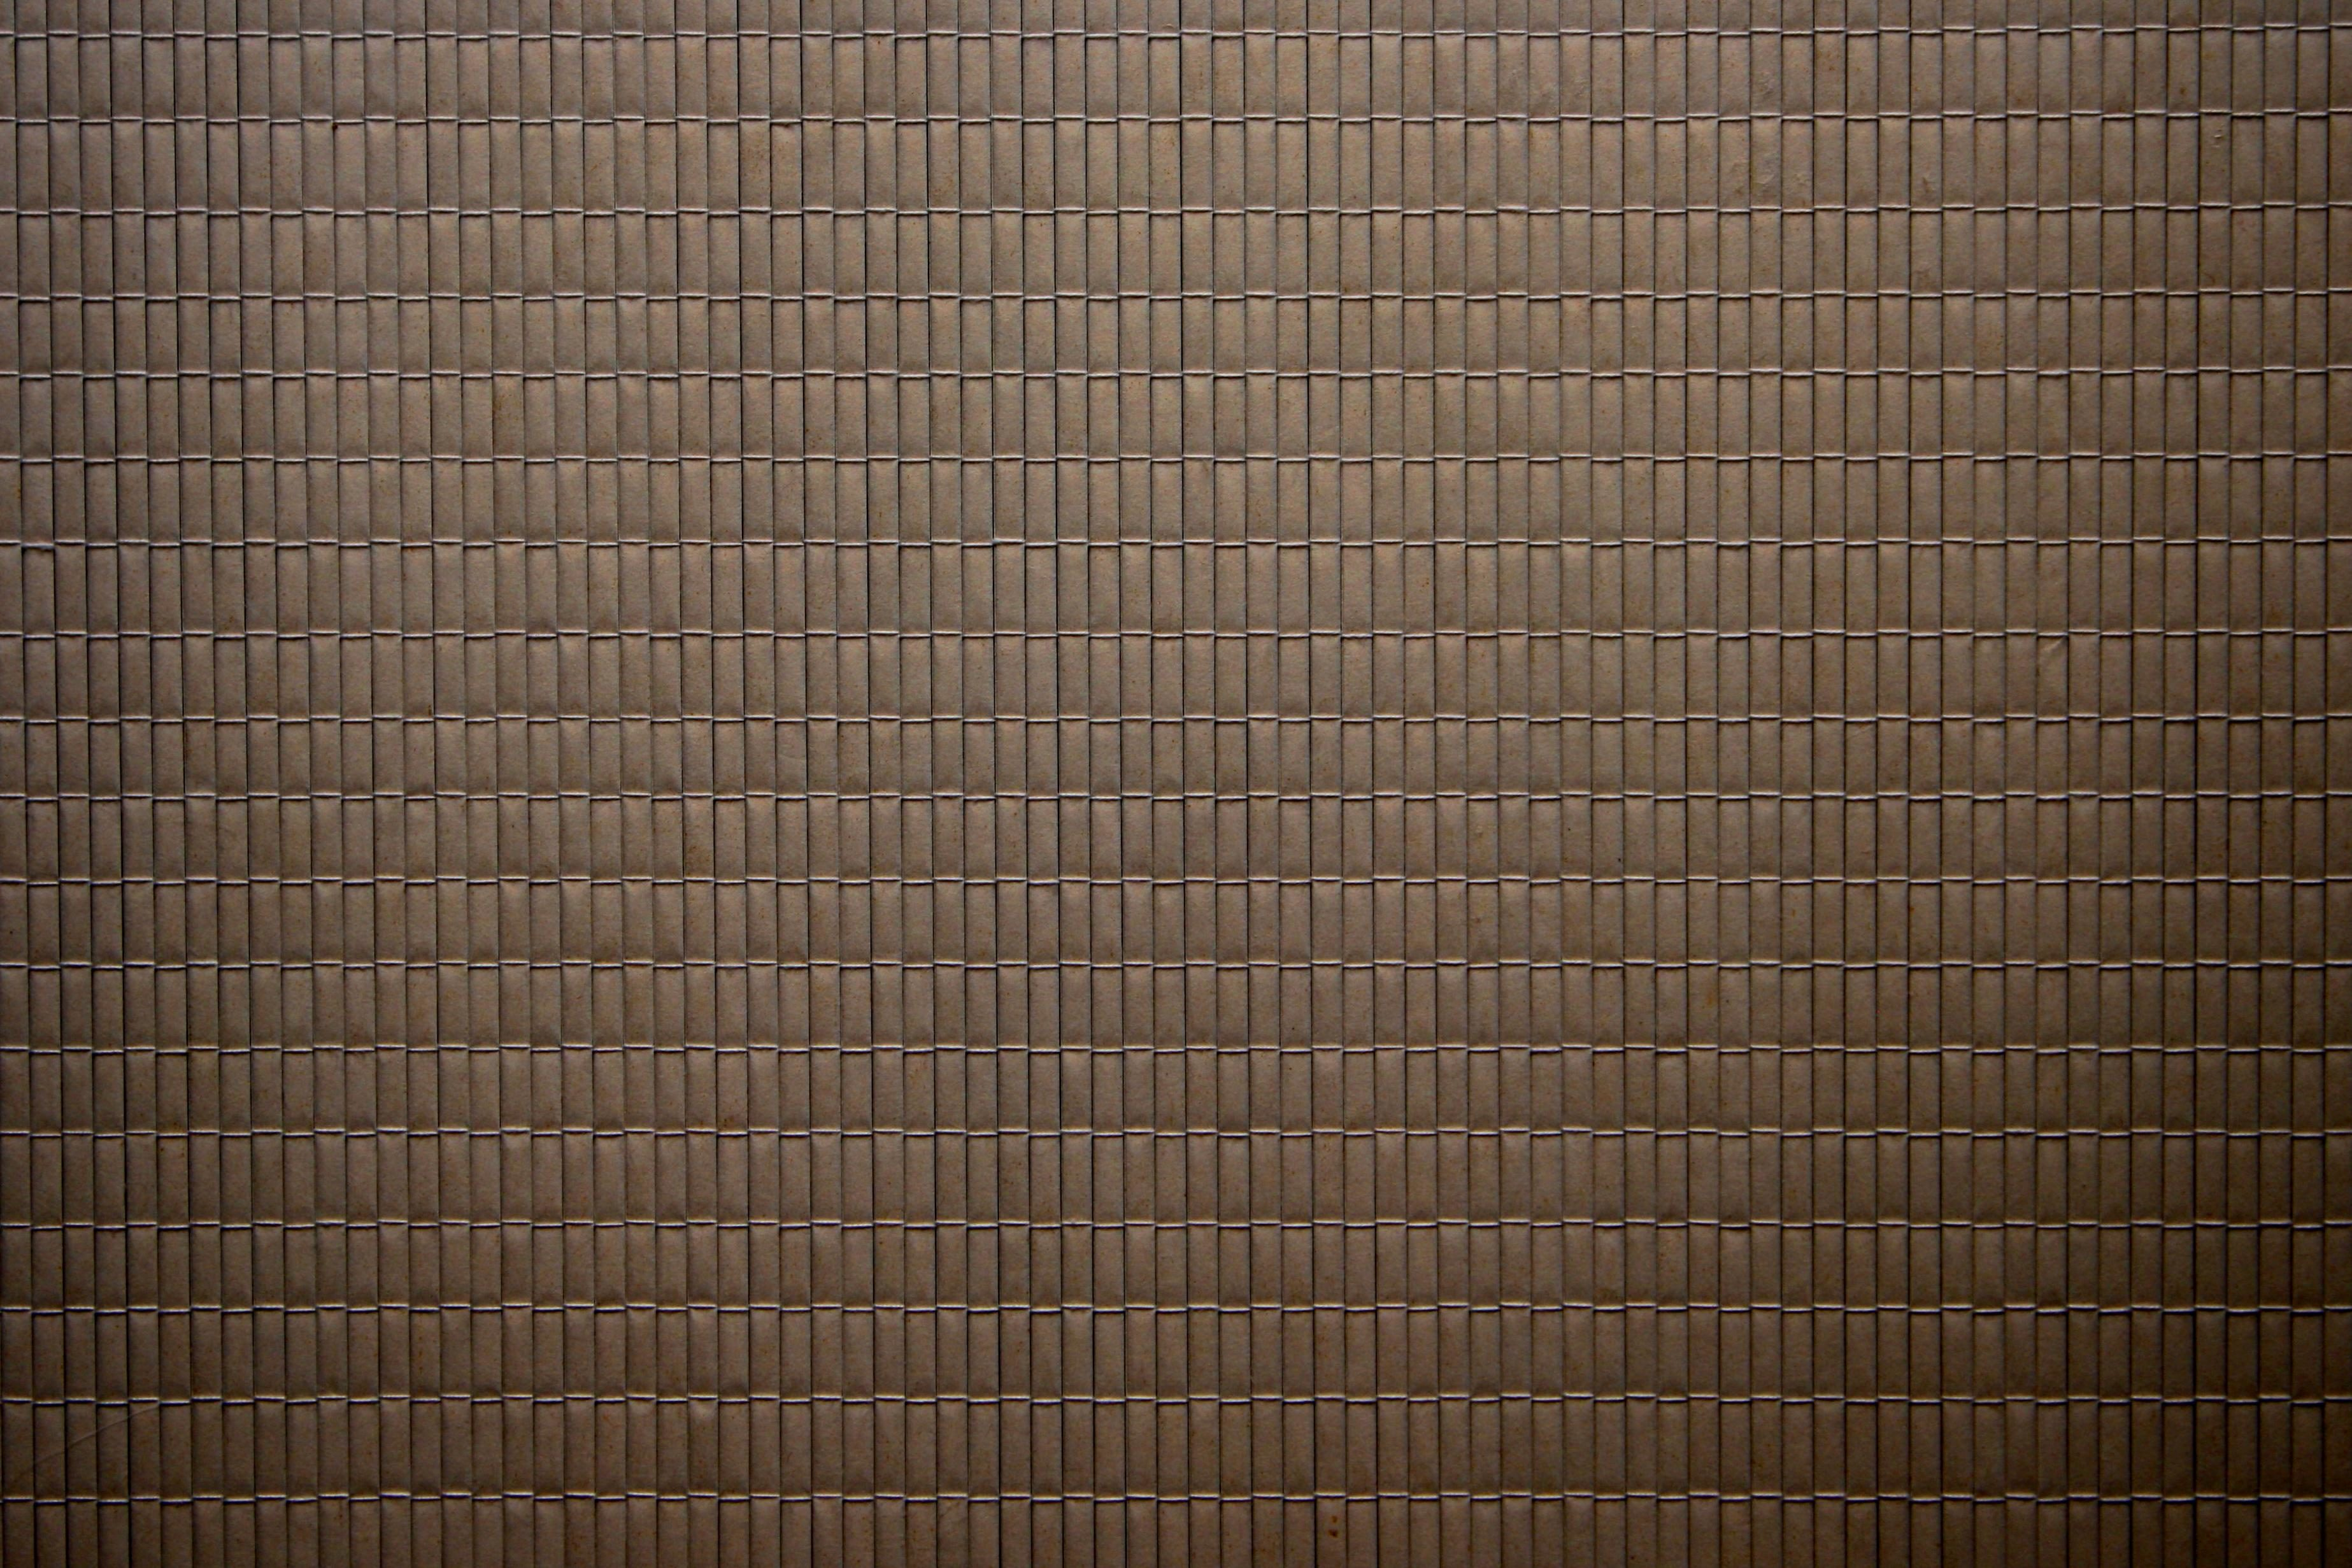 Free picture: coffee color, brown, bamboo mat, texture